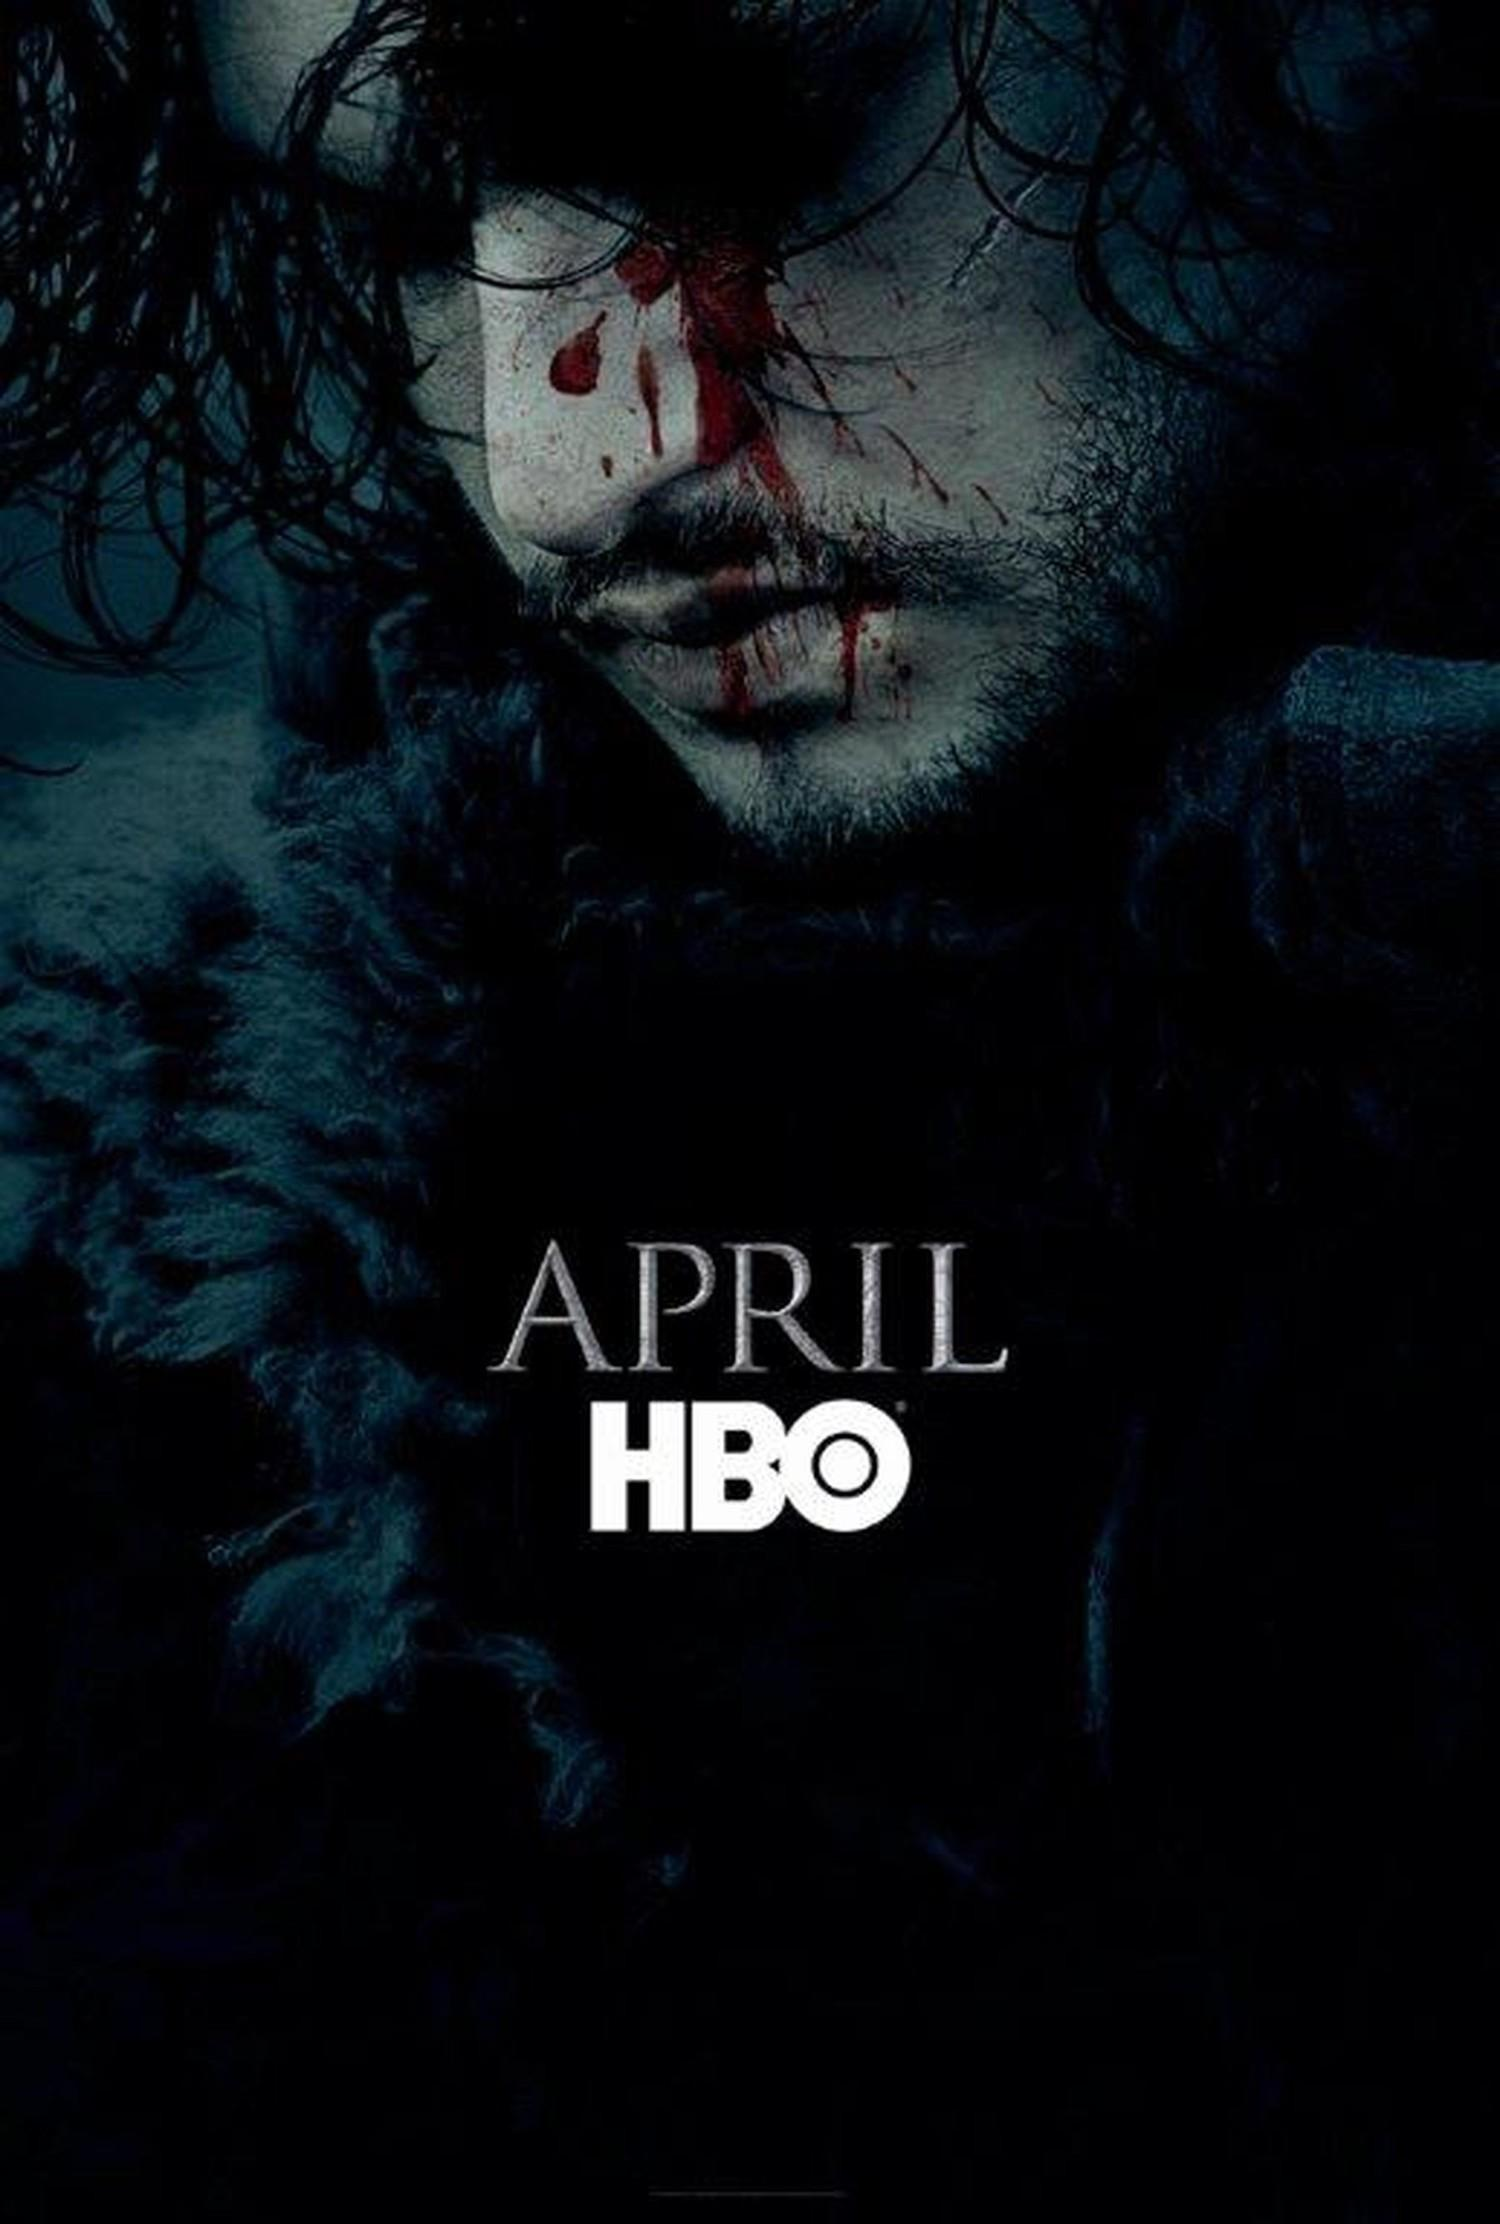 jon-season-six-poster-game-of-thrones